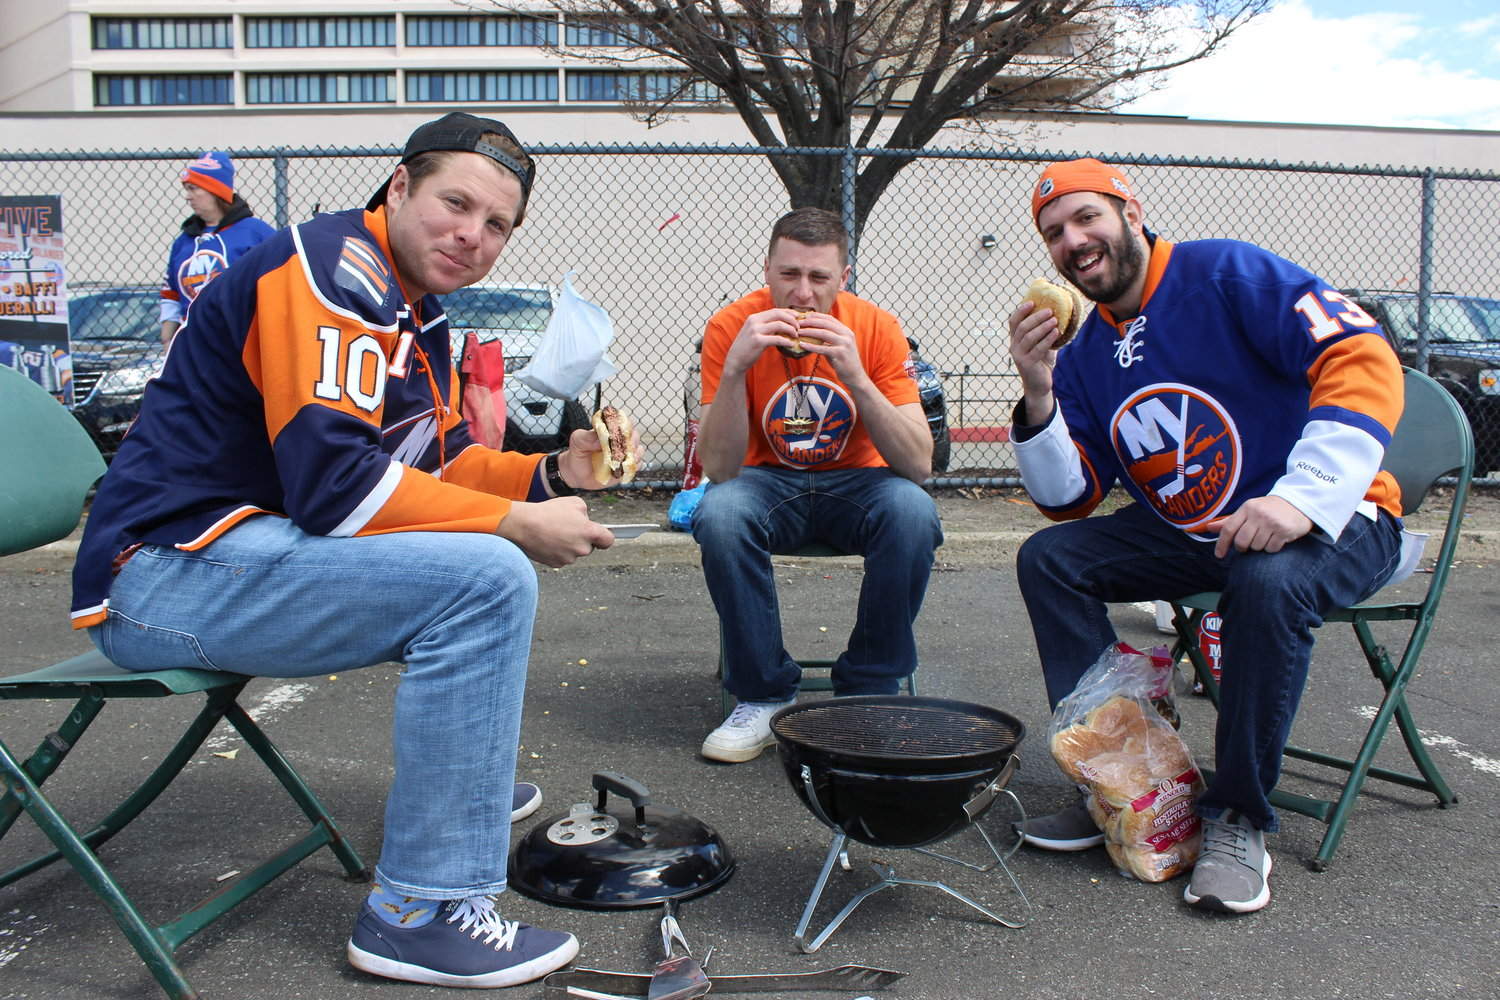 Monteleone, center, and his friends Dave Cote and Nick Christofides had a barbecue set up by noon in preparation for the Islanders' April game against the Pittsburgh Penguins.